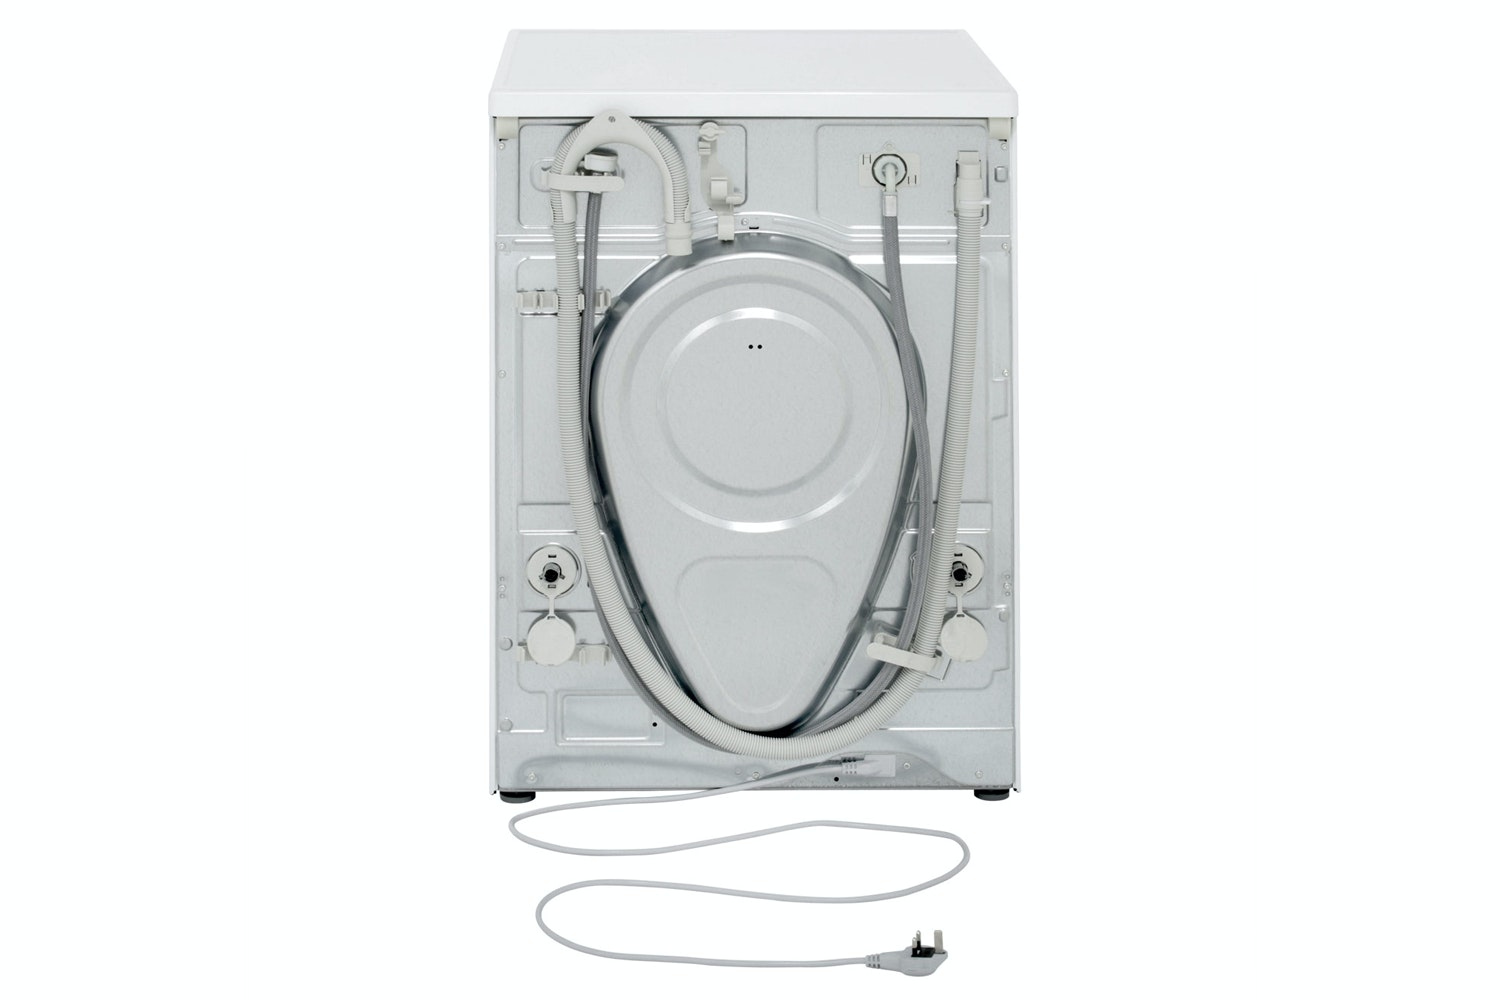 W1 Front-loading washing machine  With Softsteam honeycomb drum and   CapDosing for perfect laundry care